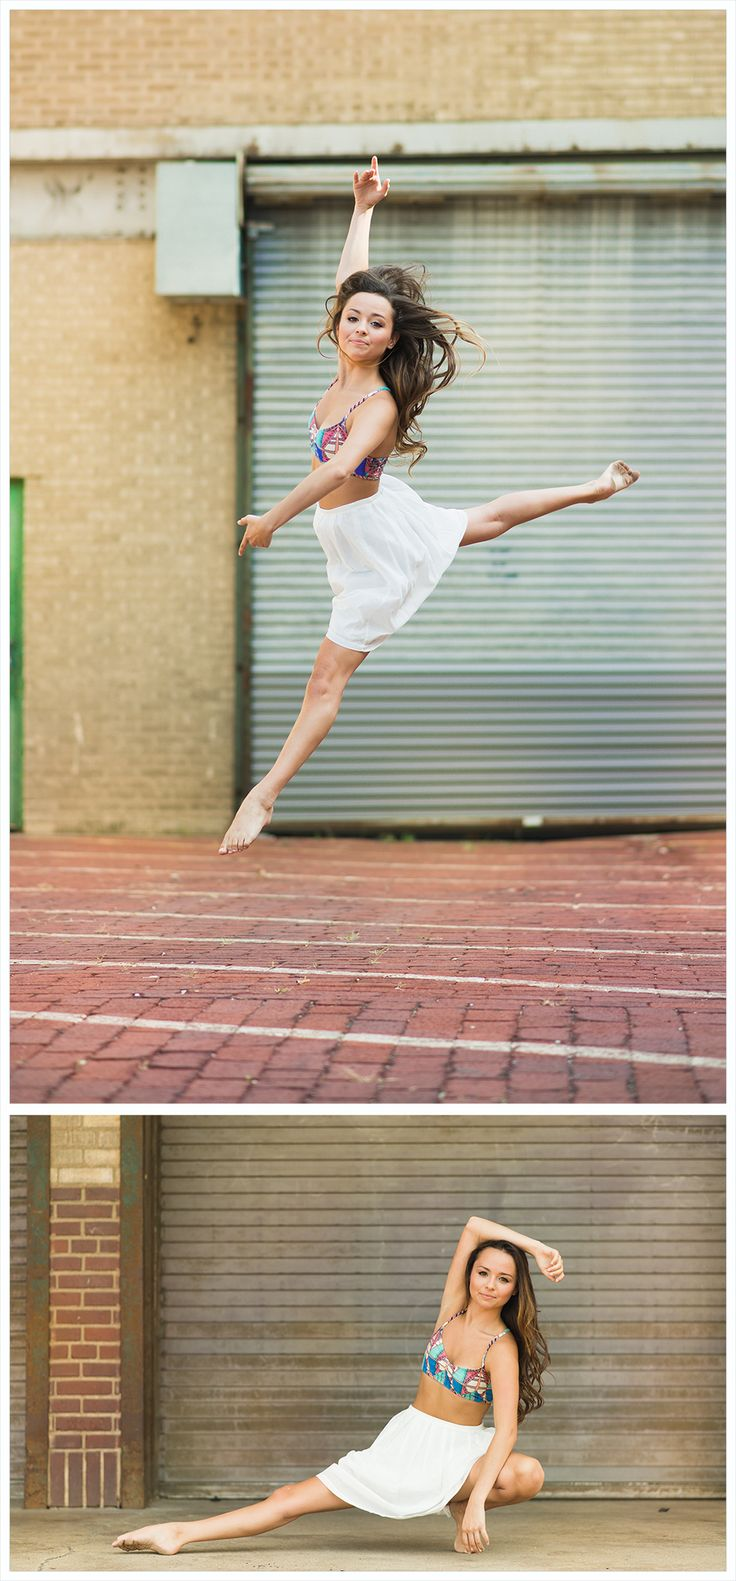 Senior portrait ideas, beautiful, senior portrait photography, senior images, senior session, contemporary dance ideas poses, white skirt, urban, jump